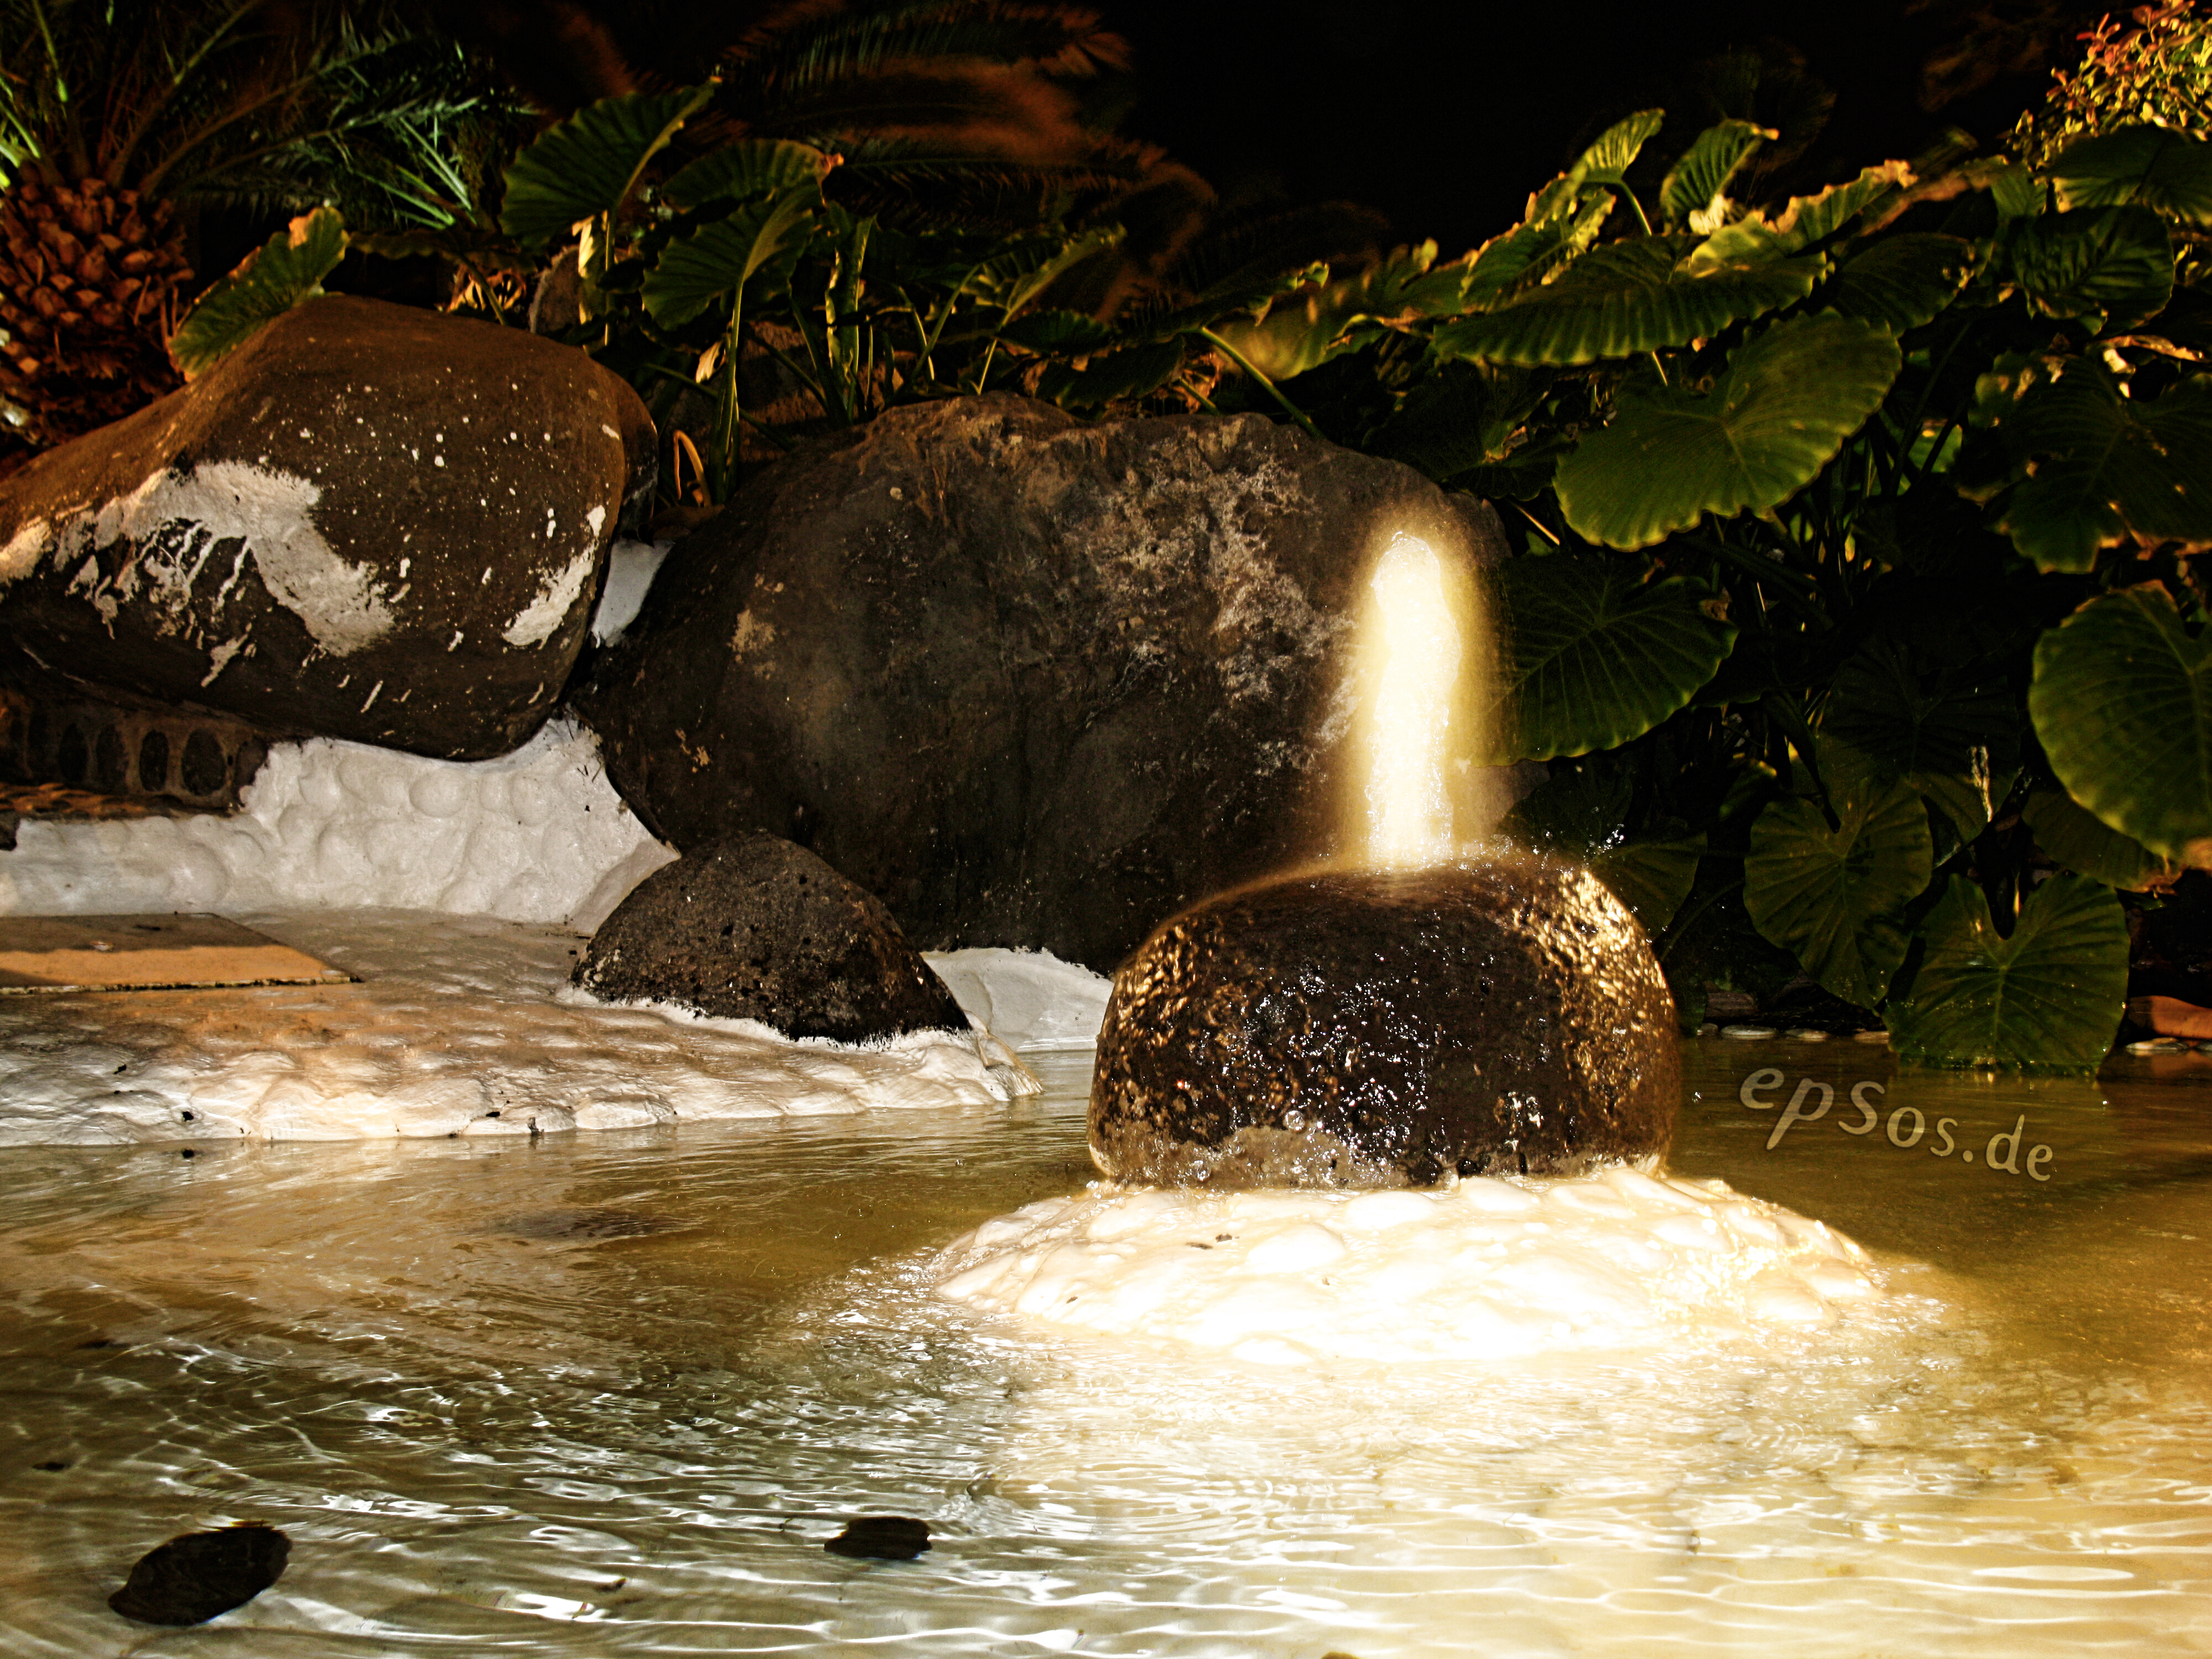 File:Magic Water Fountain Light At Night Garden